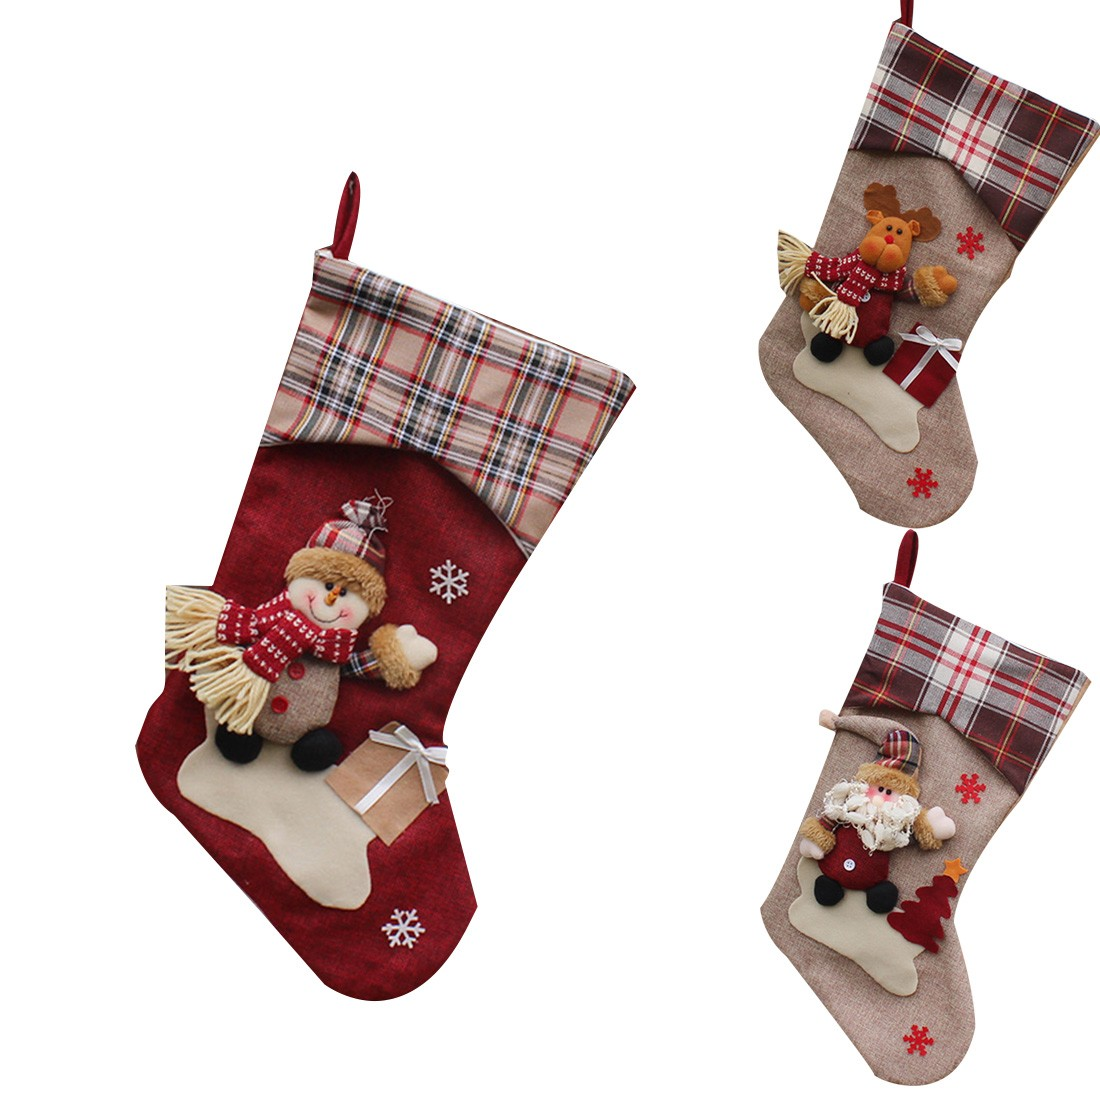 Ornament S Reviews Online Shopping Ornament S Reviews On